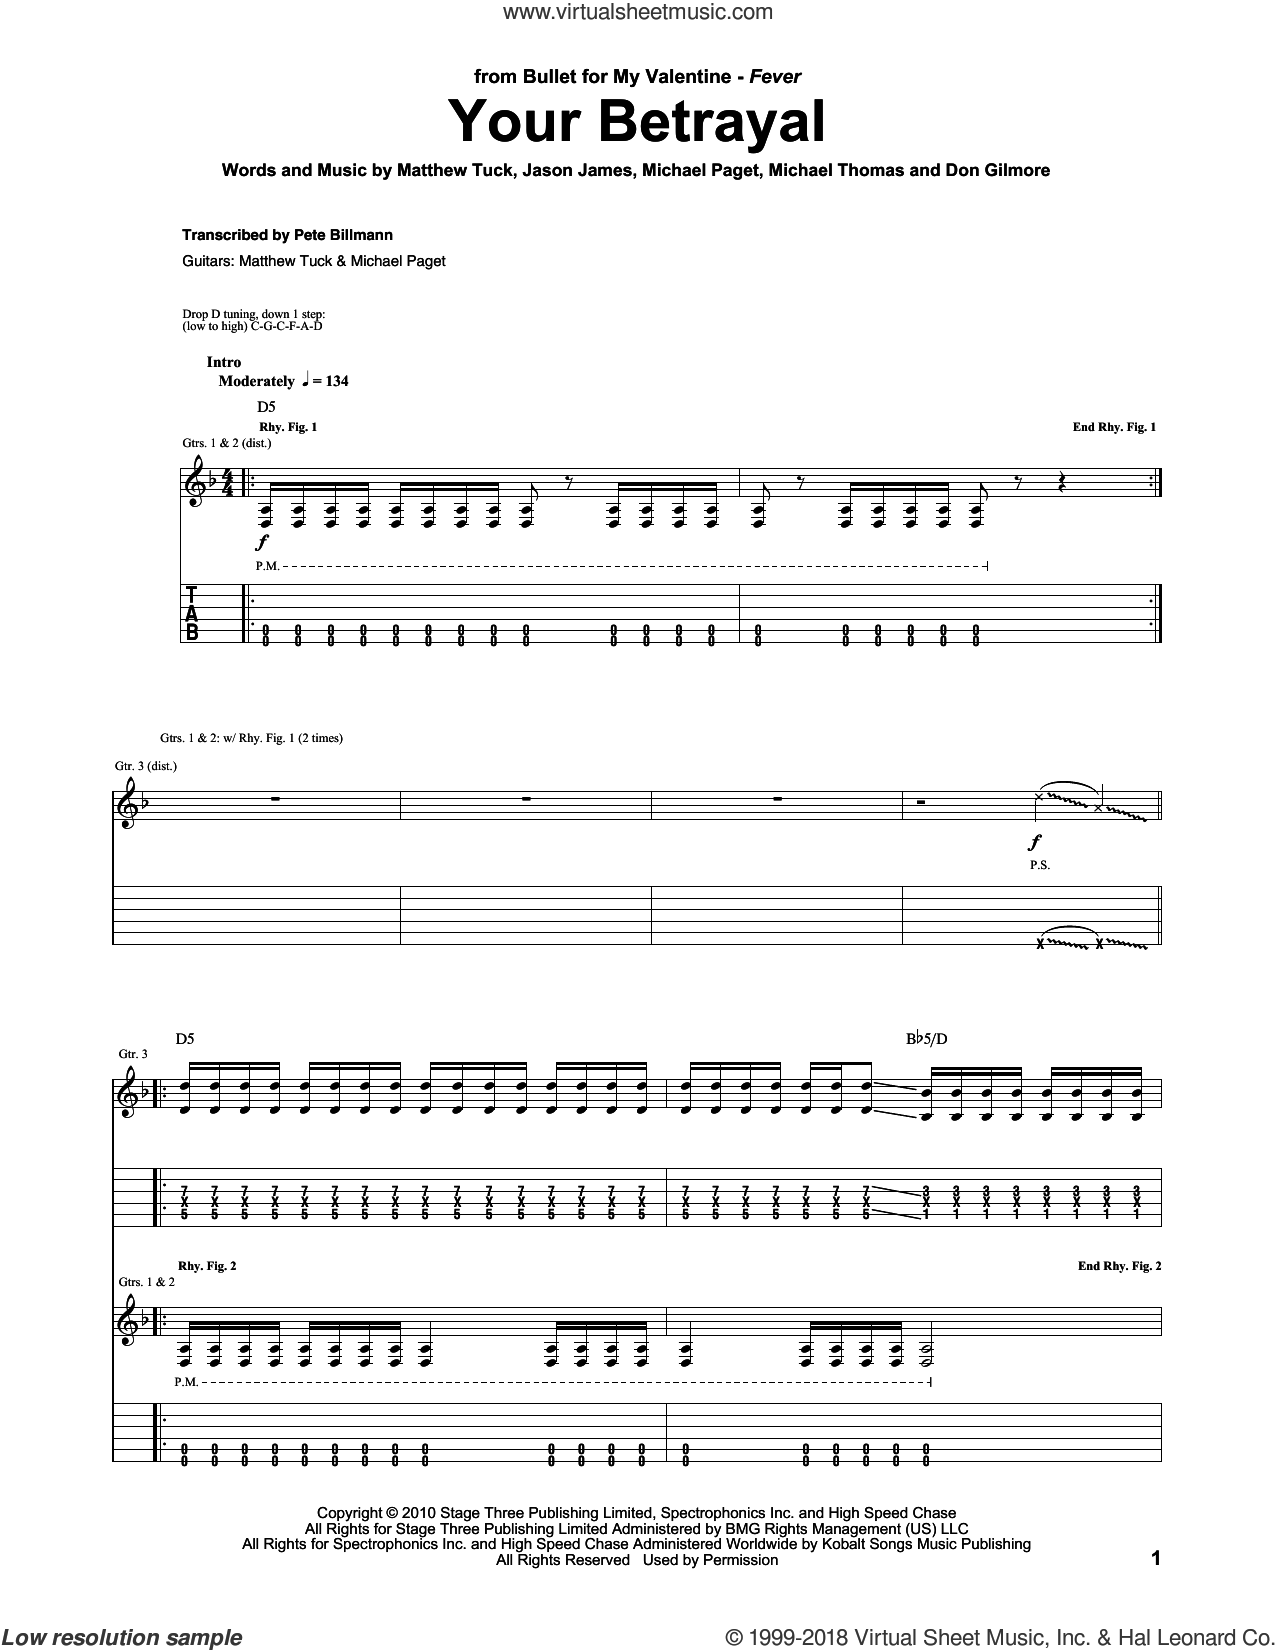 Your Betrayal sheet music for guitar (tablature) by Bullet For My Valentine, Don Gilmore, Jason James, Matthew Tuck, Michael Paget and Michael Thomas, intermediate